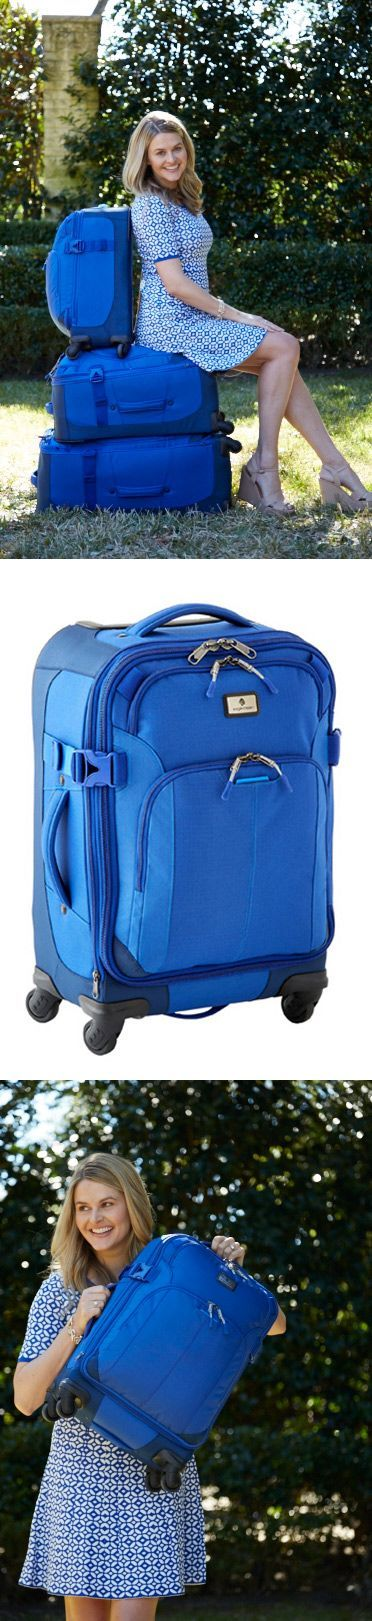 Our Eagle Creek Luggage has been a staple for years! The collection is perfect for long stays and short trips!